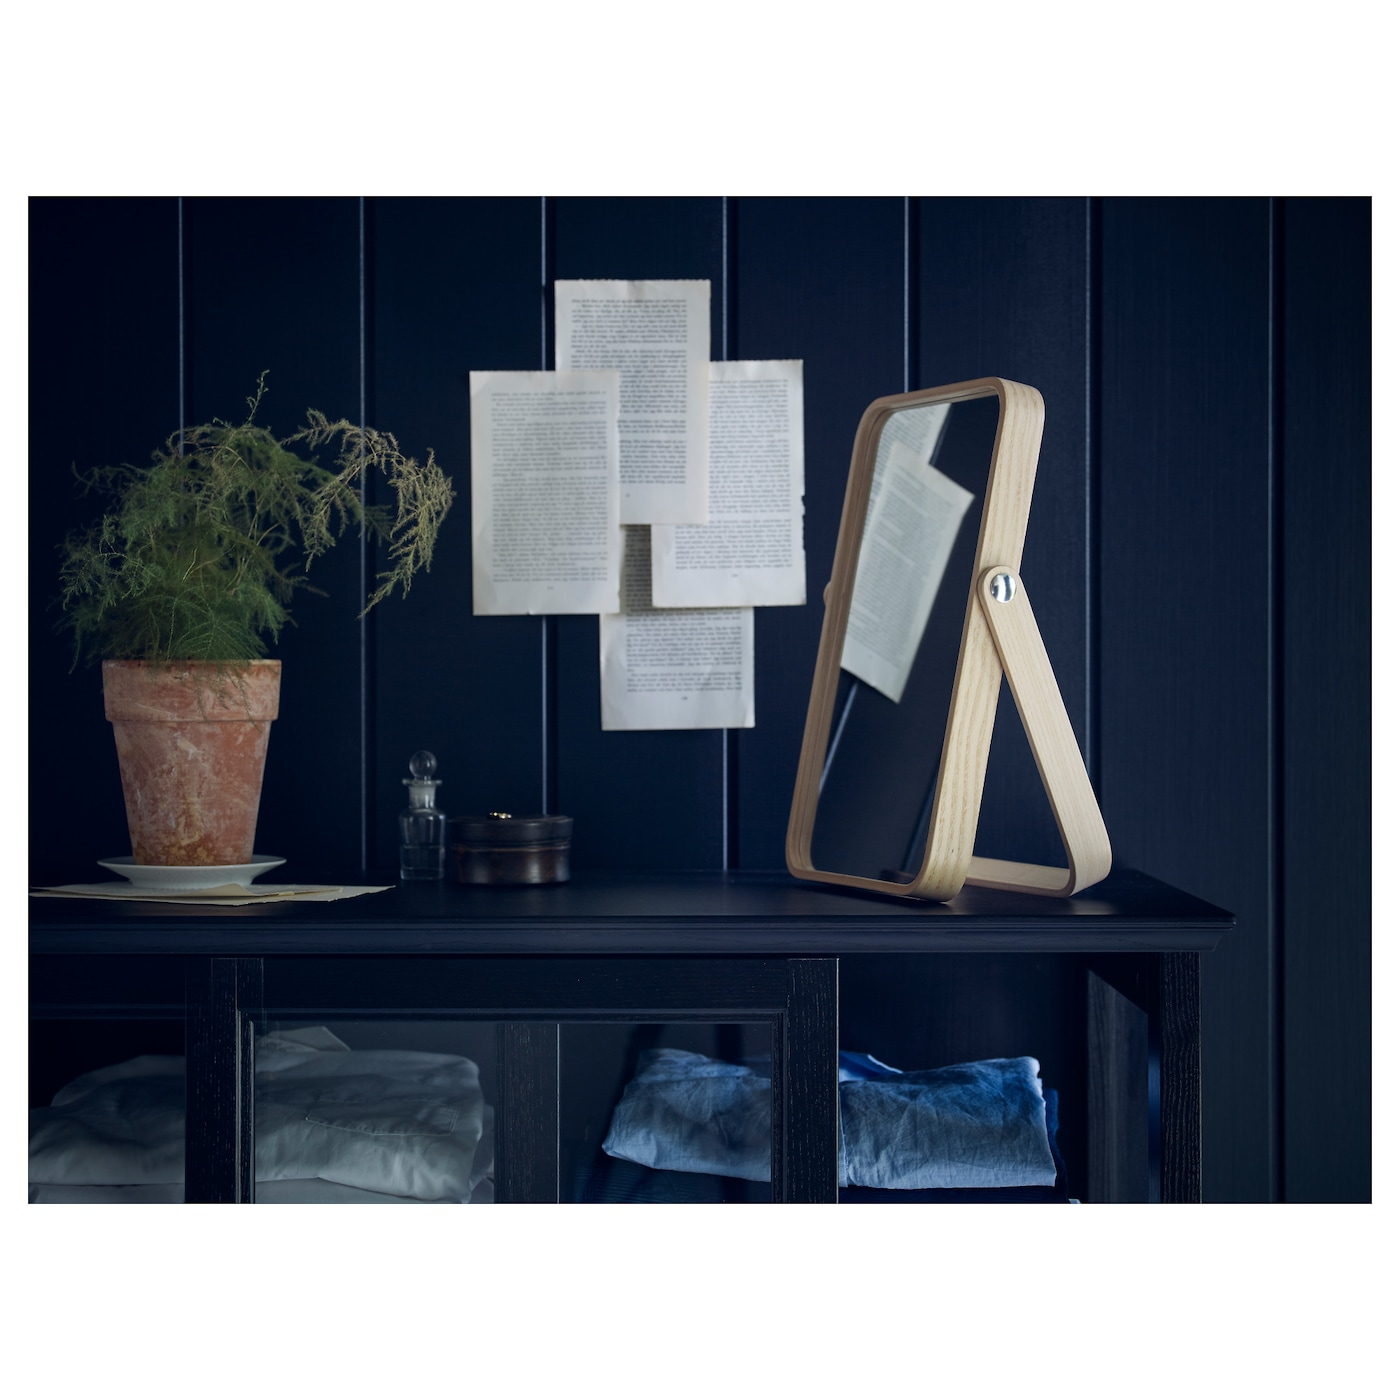 Ikea ikornnes table mirror suitable for use in most rooms and tested and approved for